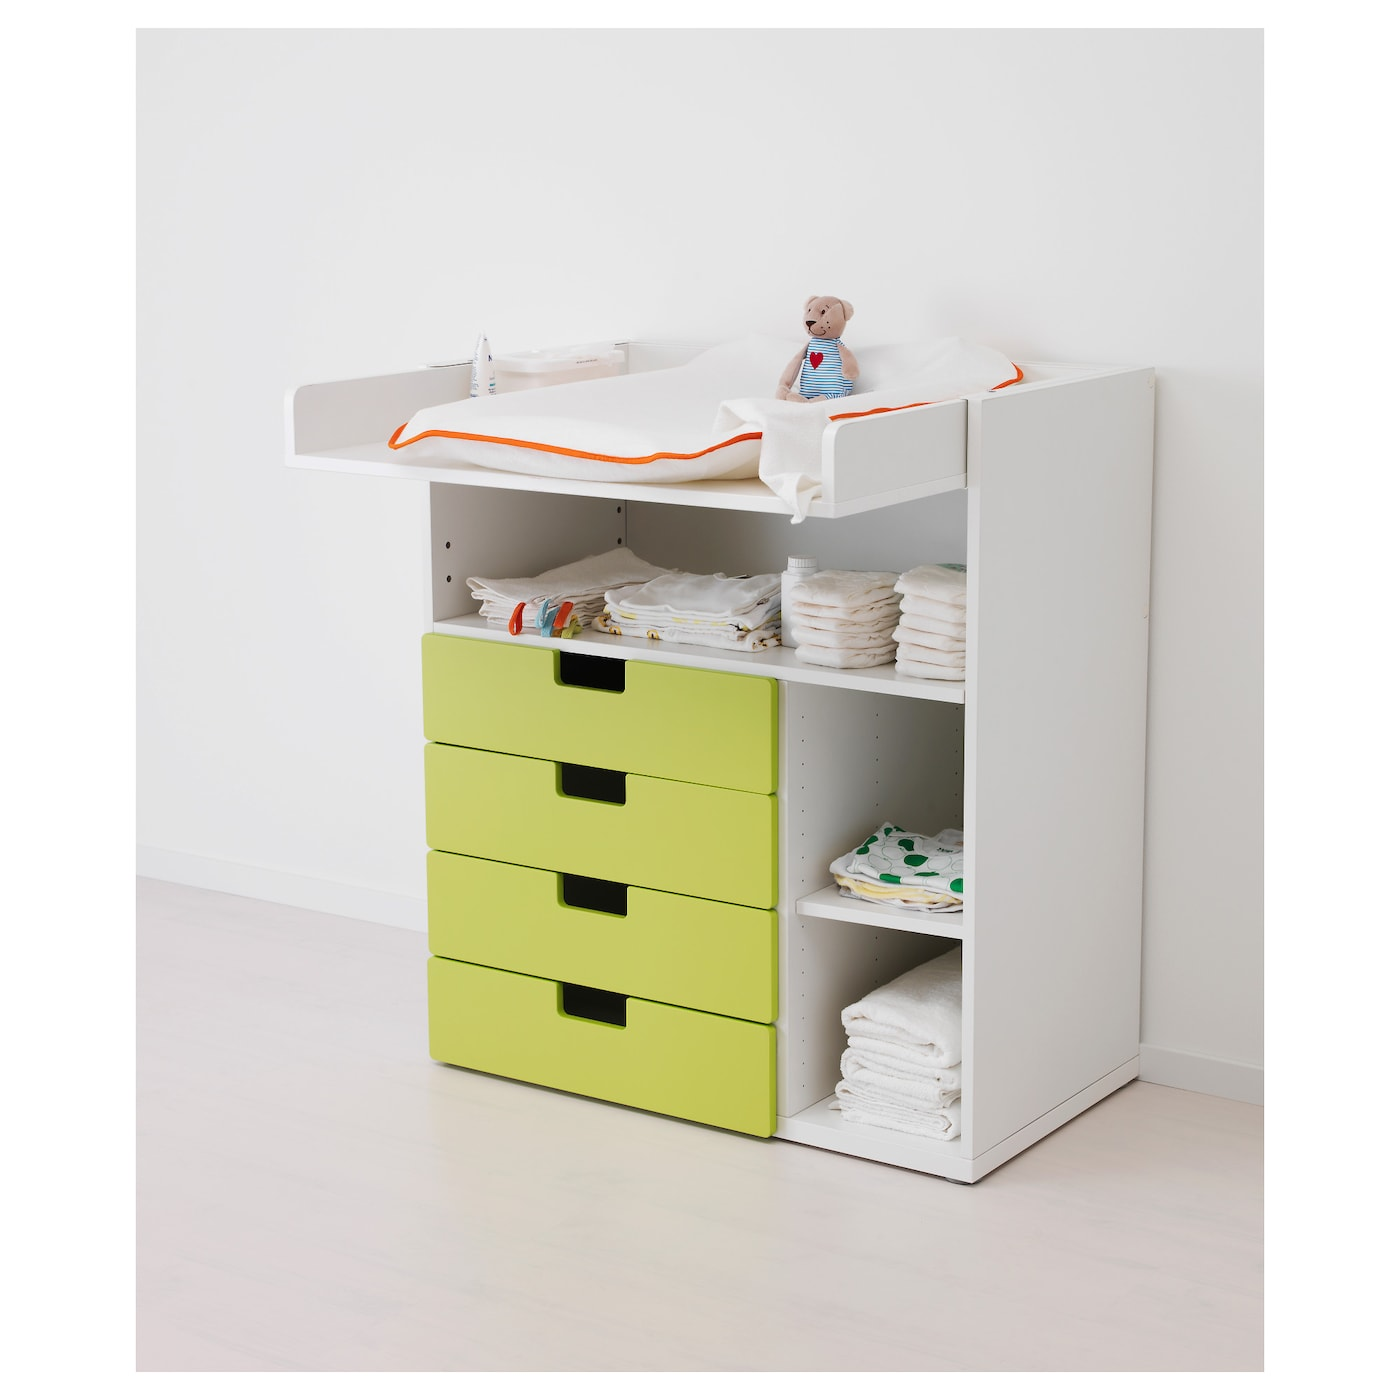 Trysil Ikea Bed Frame Review ~ Changing table desk STUVA White